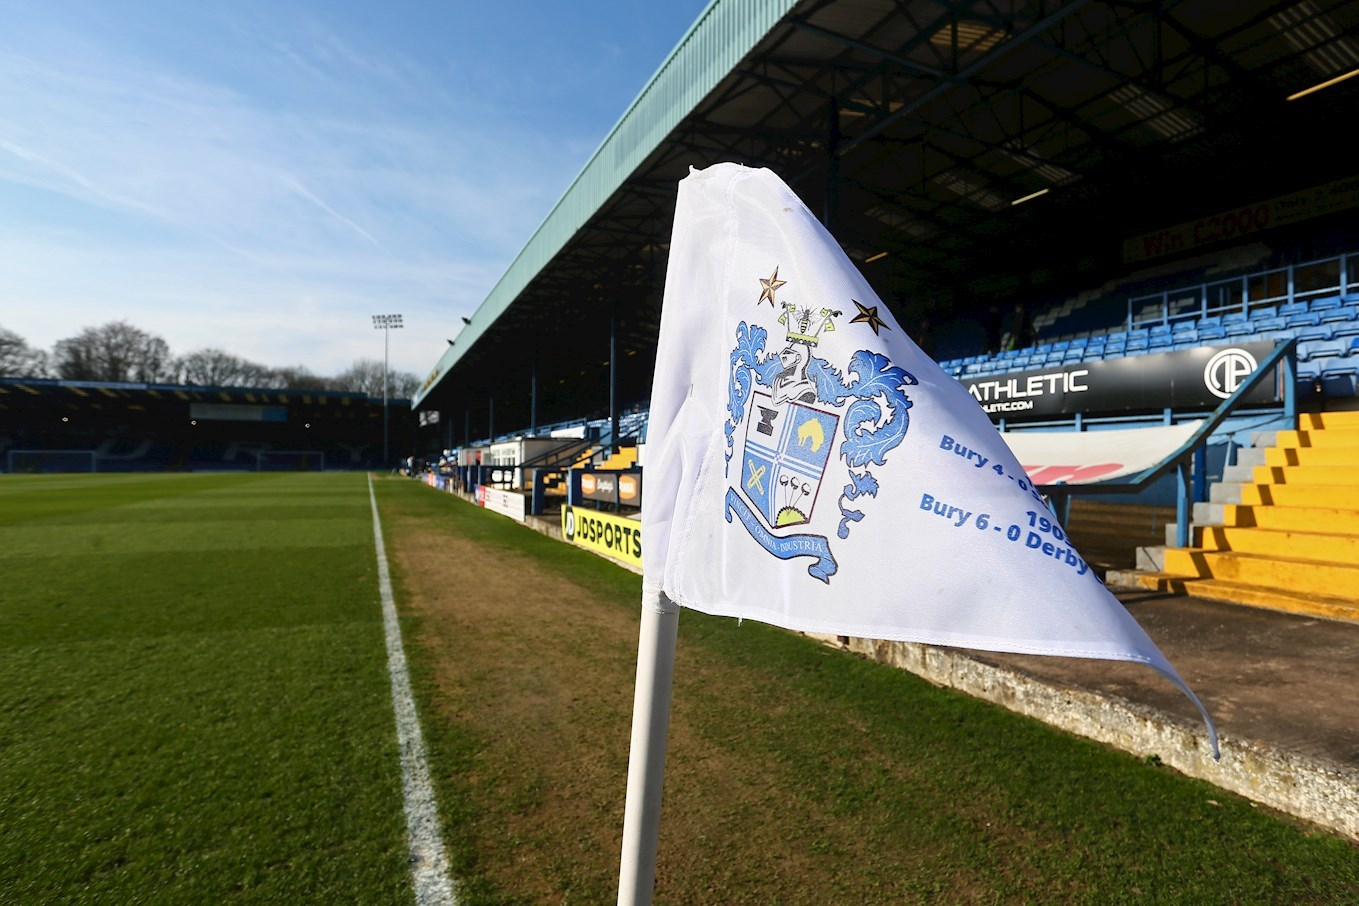 PREVIEW: New League One Opponents - Bury